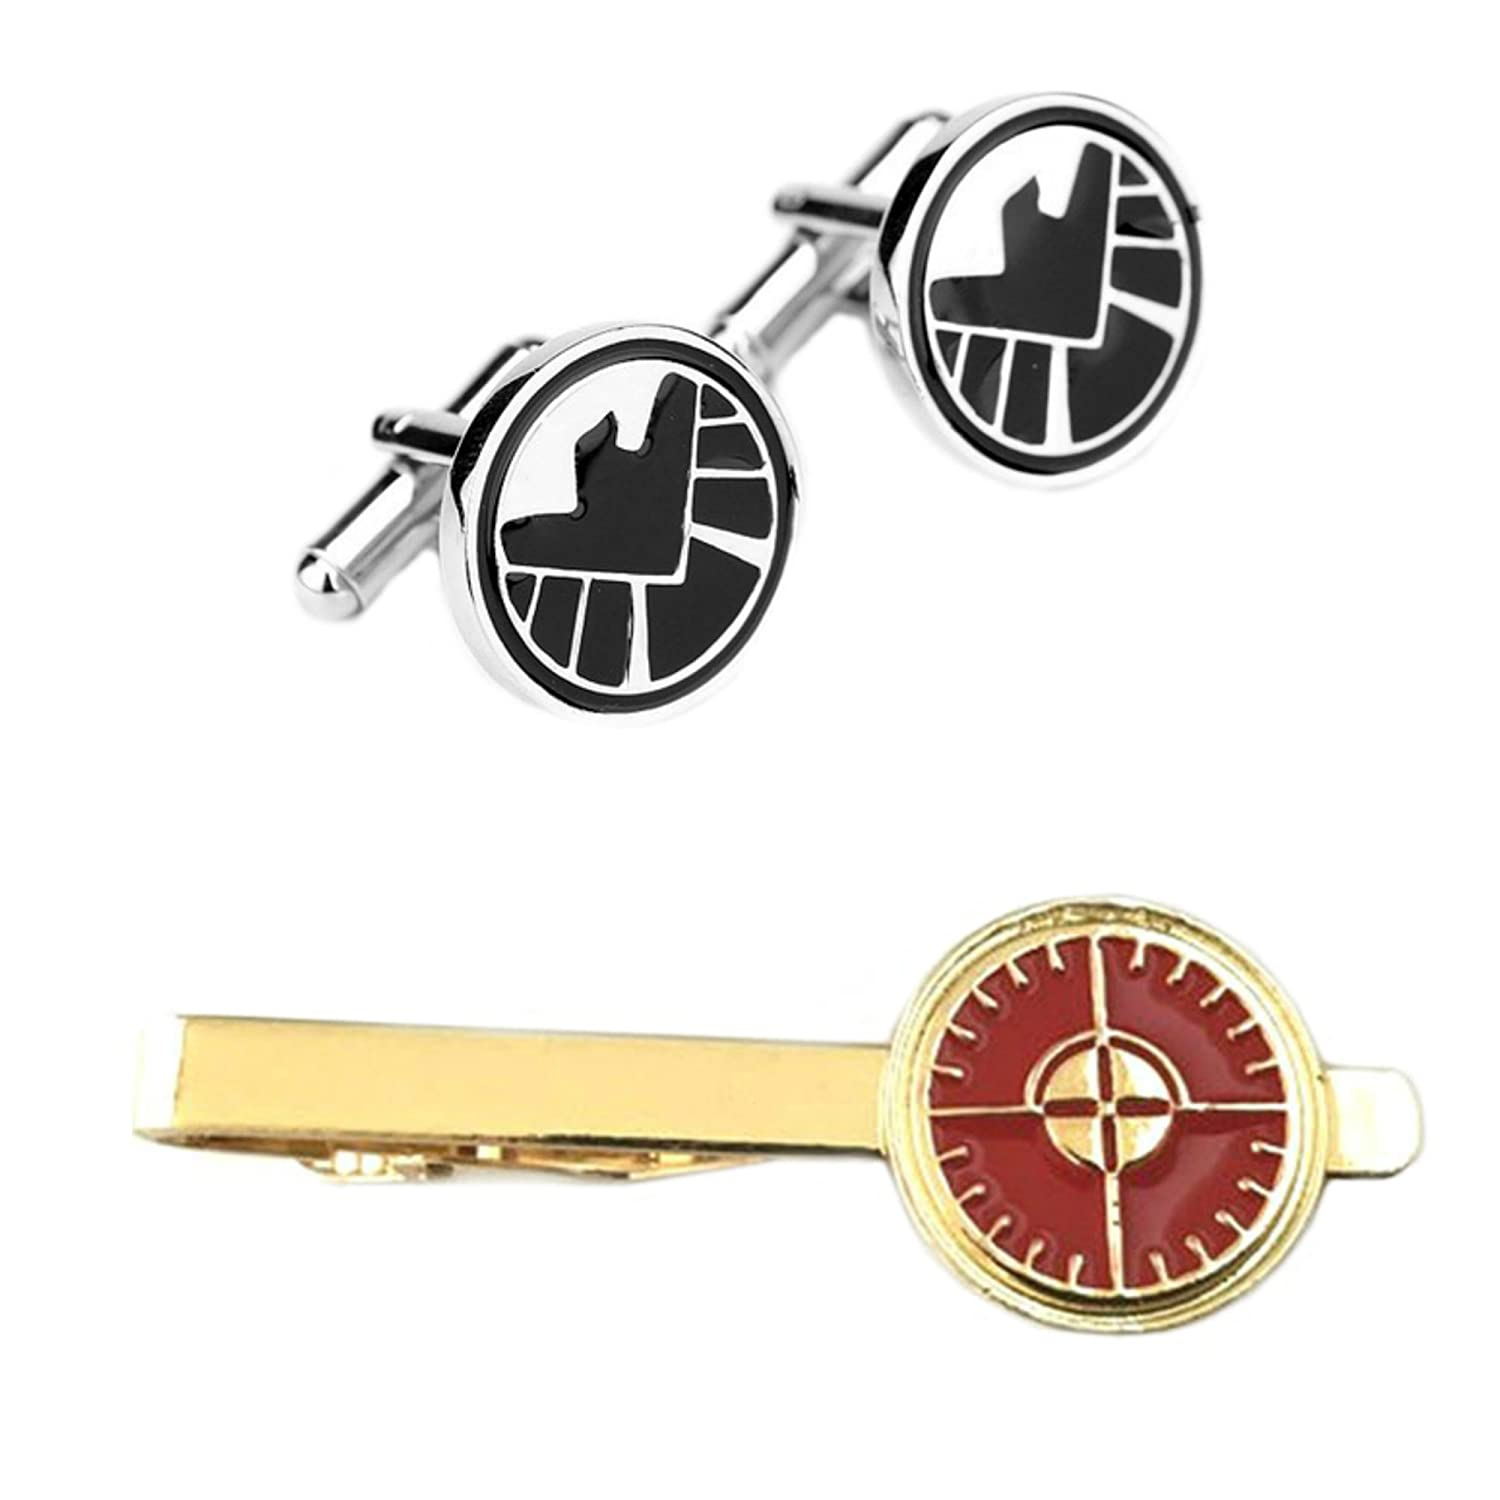 Outlander SHIELD Cufflink & Hawkeye Tiebar - New 2018 Marvel